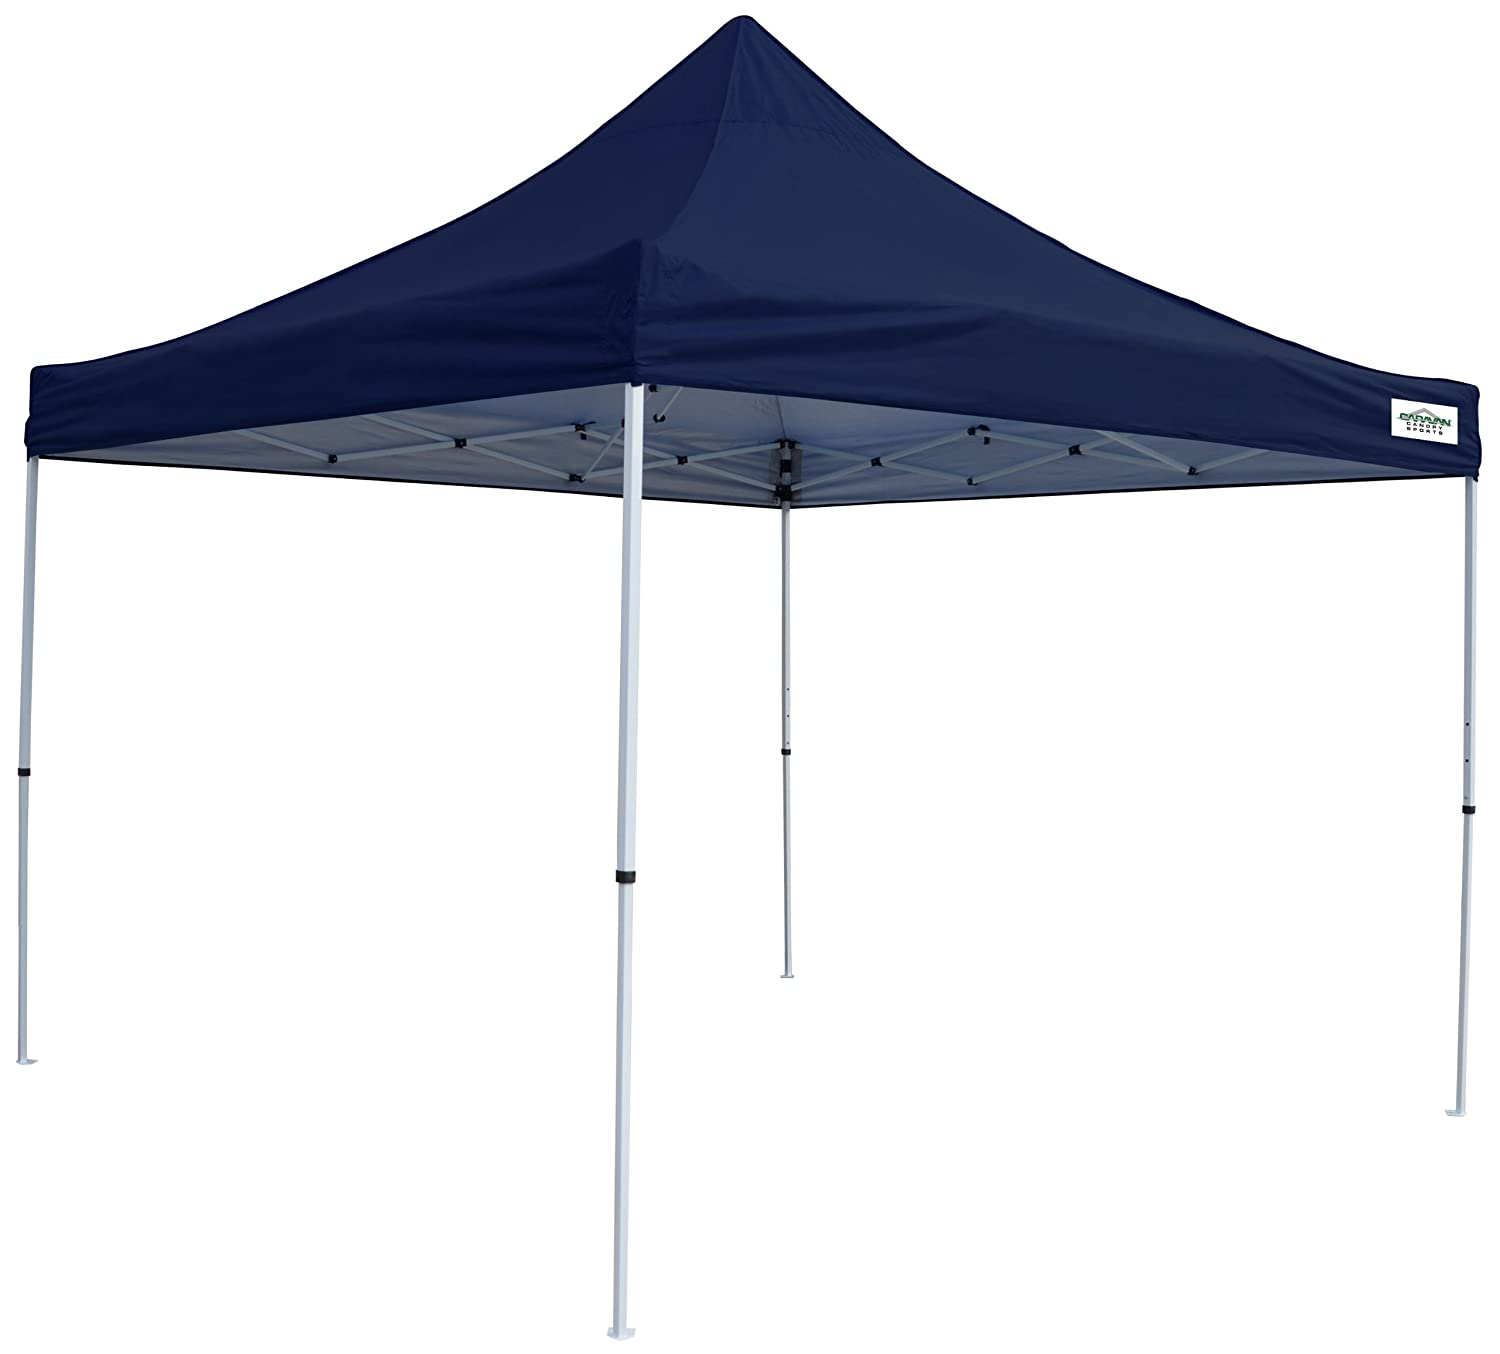 Amazon.com Caravan Canopy M-Series 2 Pro 10 X 10 Foot Straight Leg Canopy Kit Navy Blue Garden u0026 Outdoor  sc 1 st  Amazon.com : custom tailgating tents - memphite.com